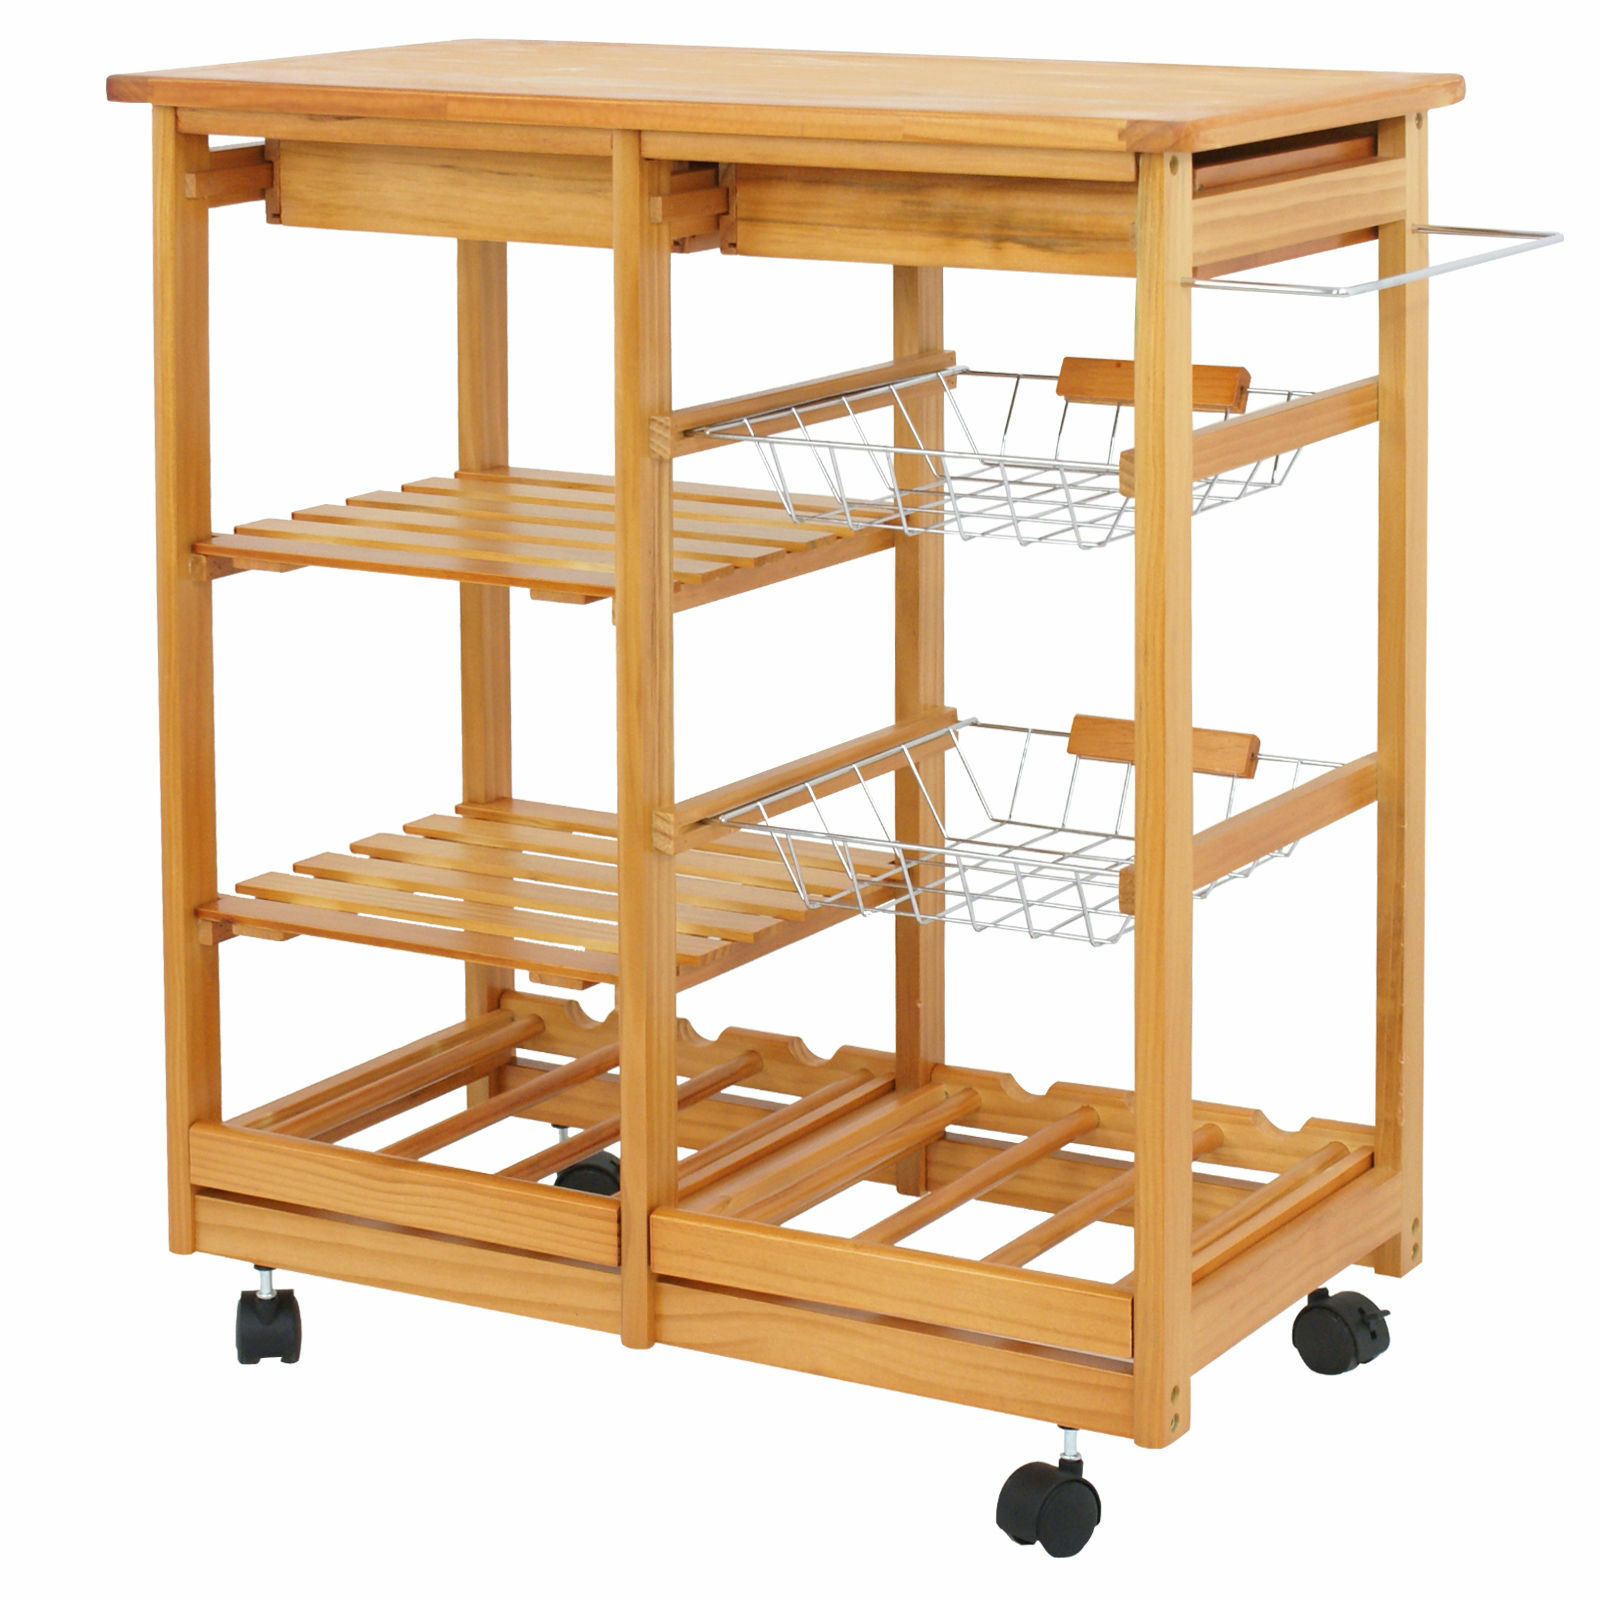 Small Kitchen Cart Rolling 2 Baskets Storage Utility Island Metal Drawer Rack For Sale Online Ebay